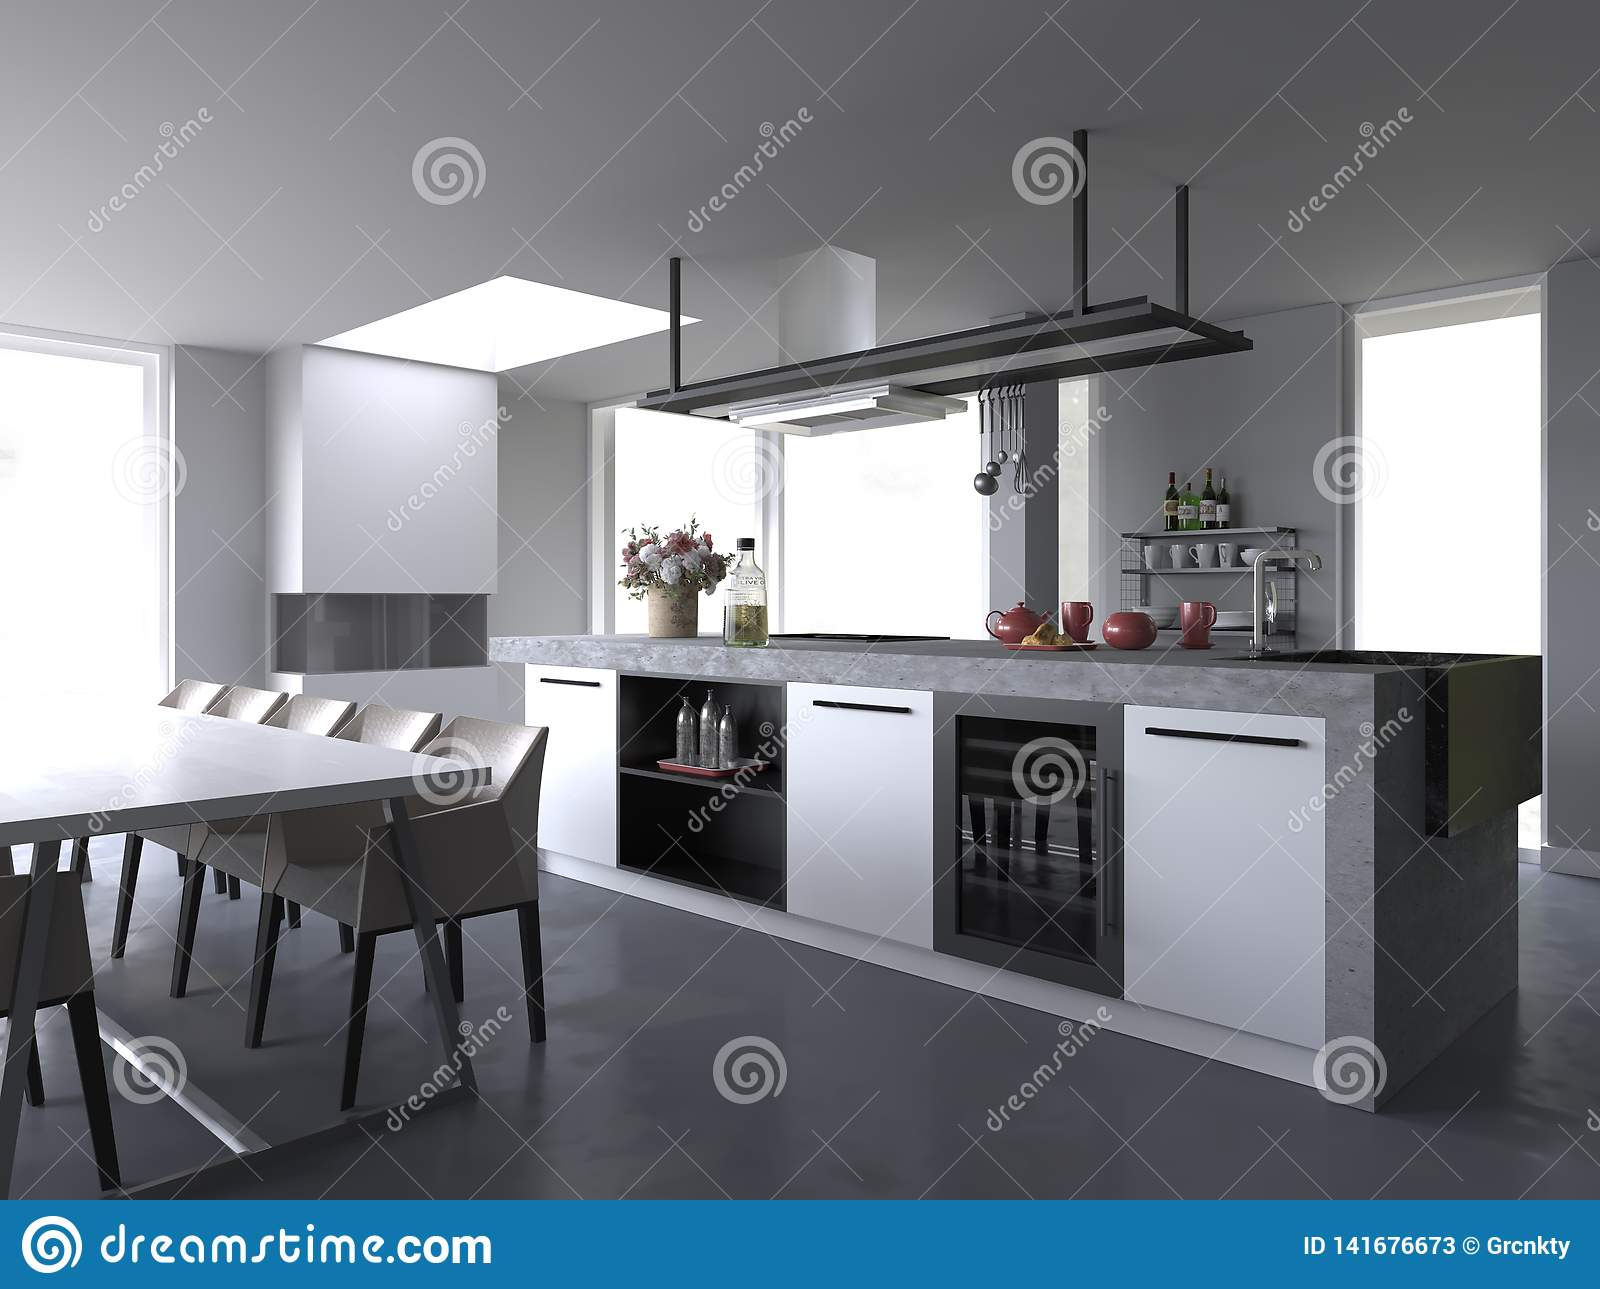 White Modern Luxury Kitchen Interior Without Background Stock